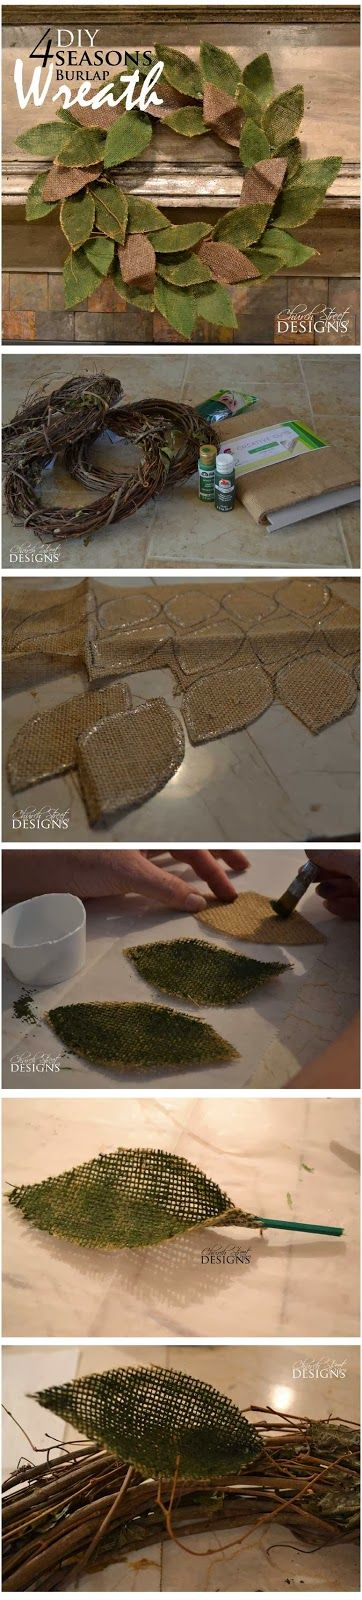 DIY Burlap 4 Seasons Wreath - Easy step-by-step instructions - Church Street Designs - I want to do this in fall colors...No tutorial.